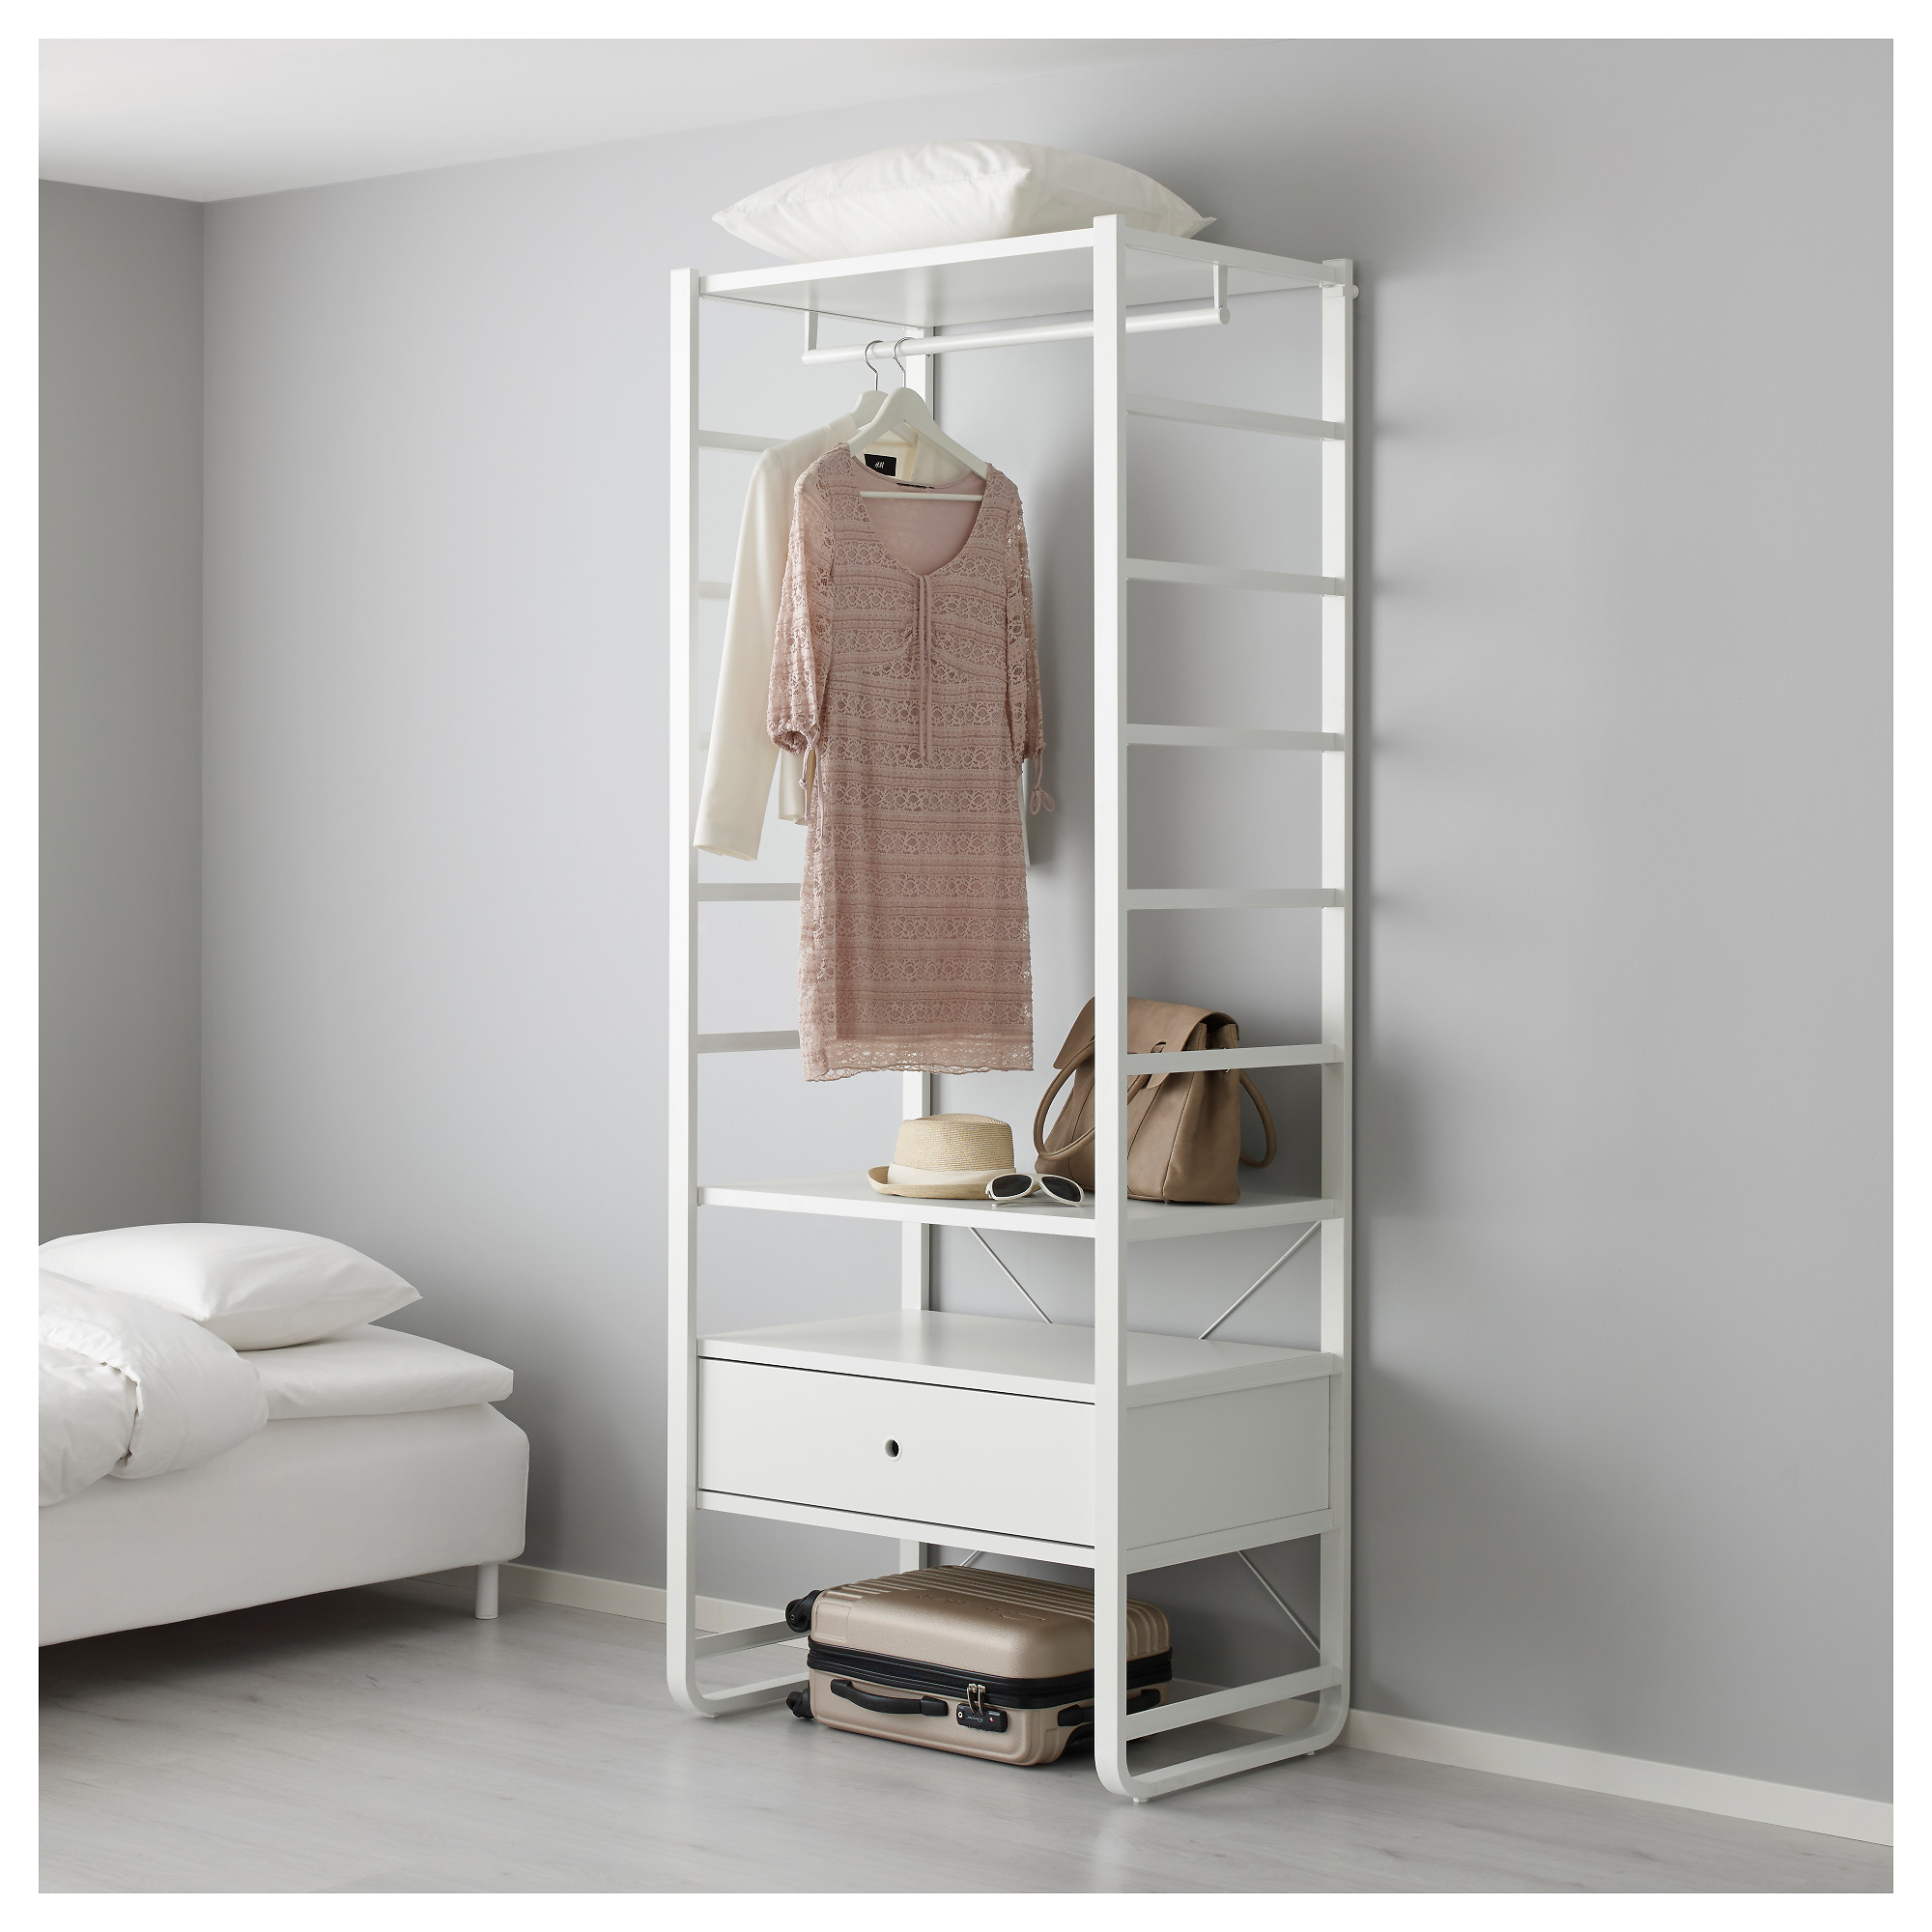 new york 38cff 2924a Shelf unit ELVARLI white